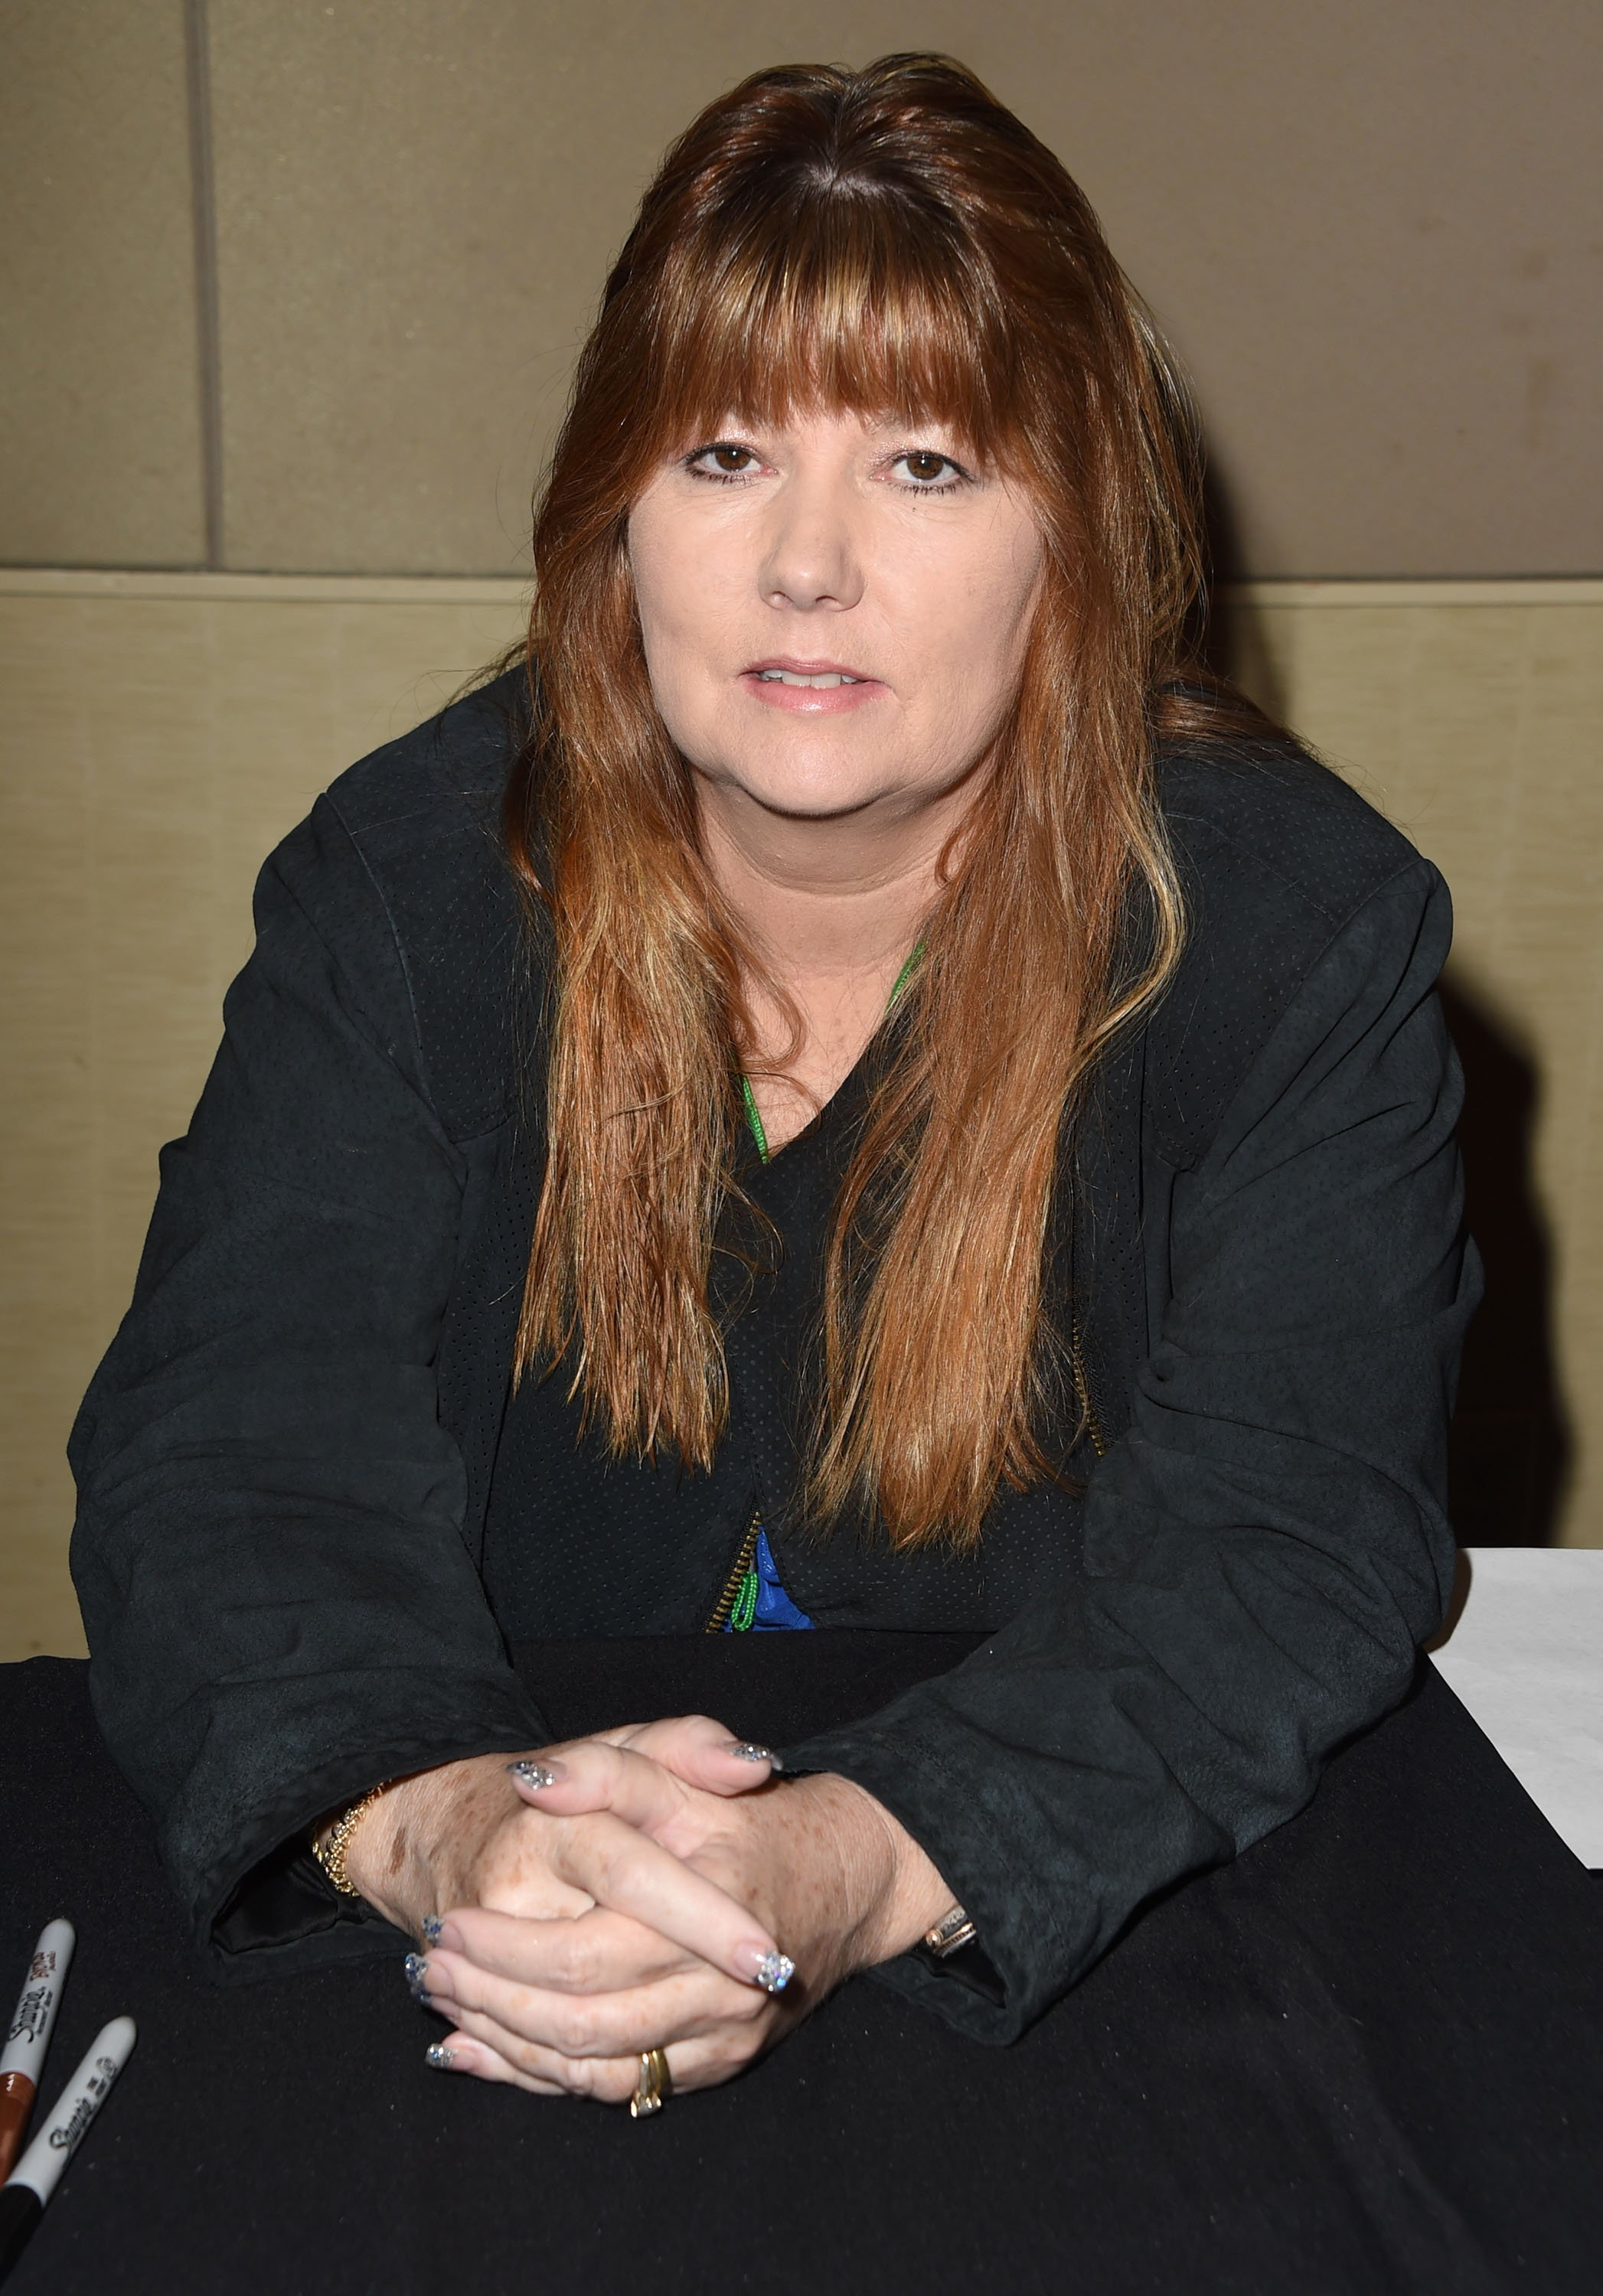 Suzanne Crough on July 20, 2014 in Los Angeles, California | Source: Getty Images/Global Images Ukraine